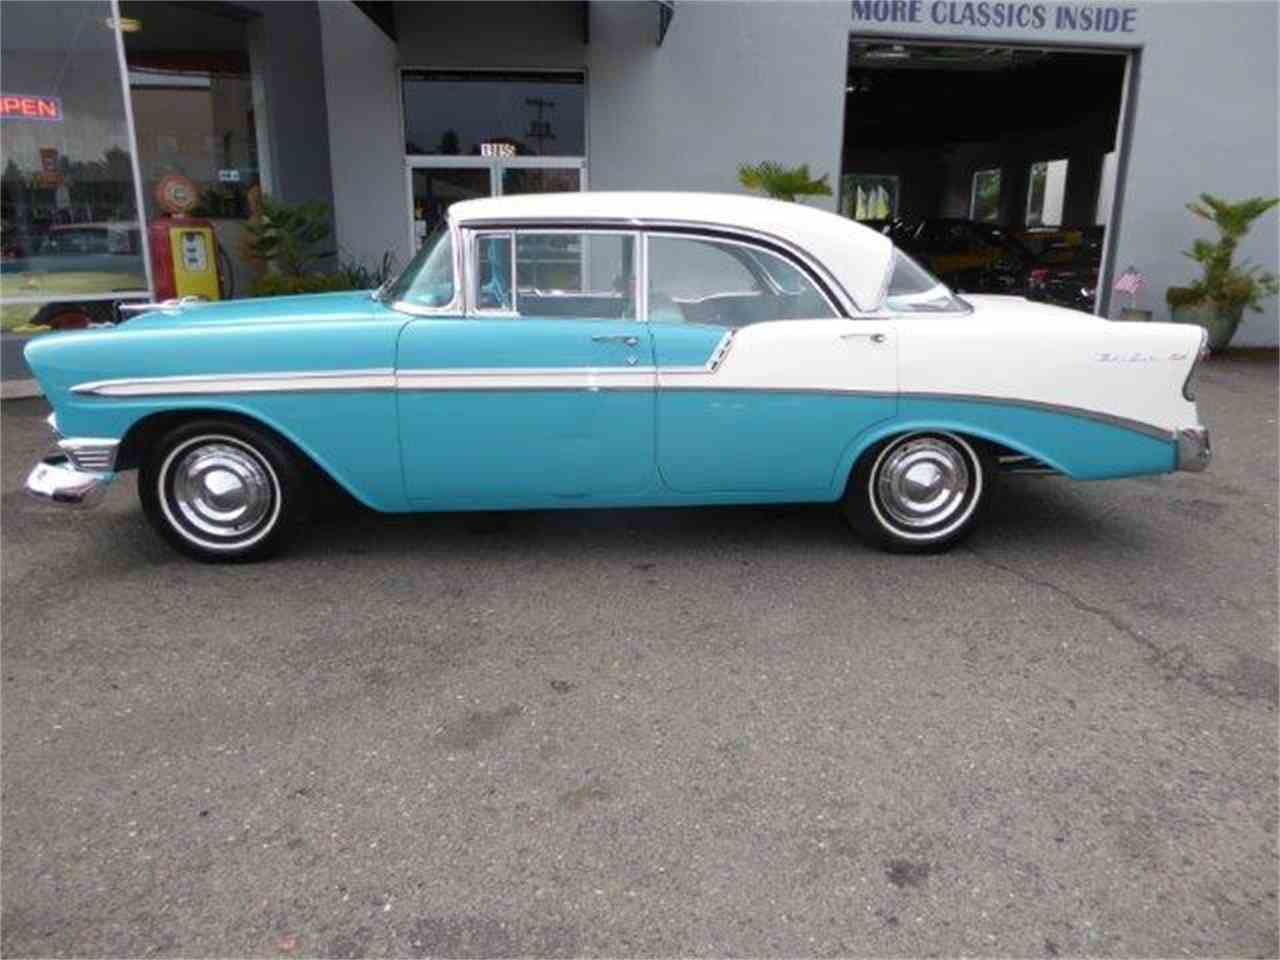 Chevrolet bel air hardtop for sale upcoming chevrolet - 1956 Chevrolet Bel Air For Sale Cc 1033934